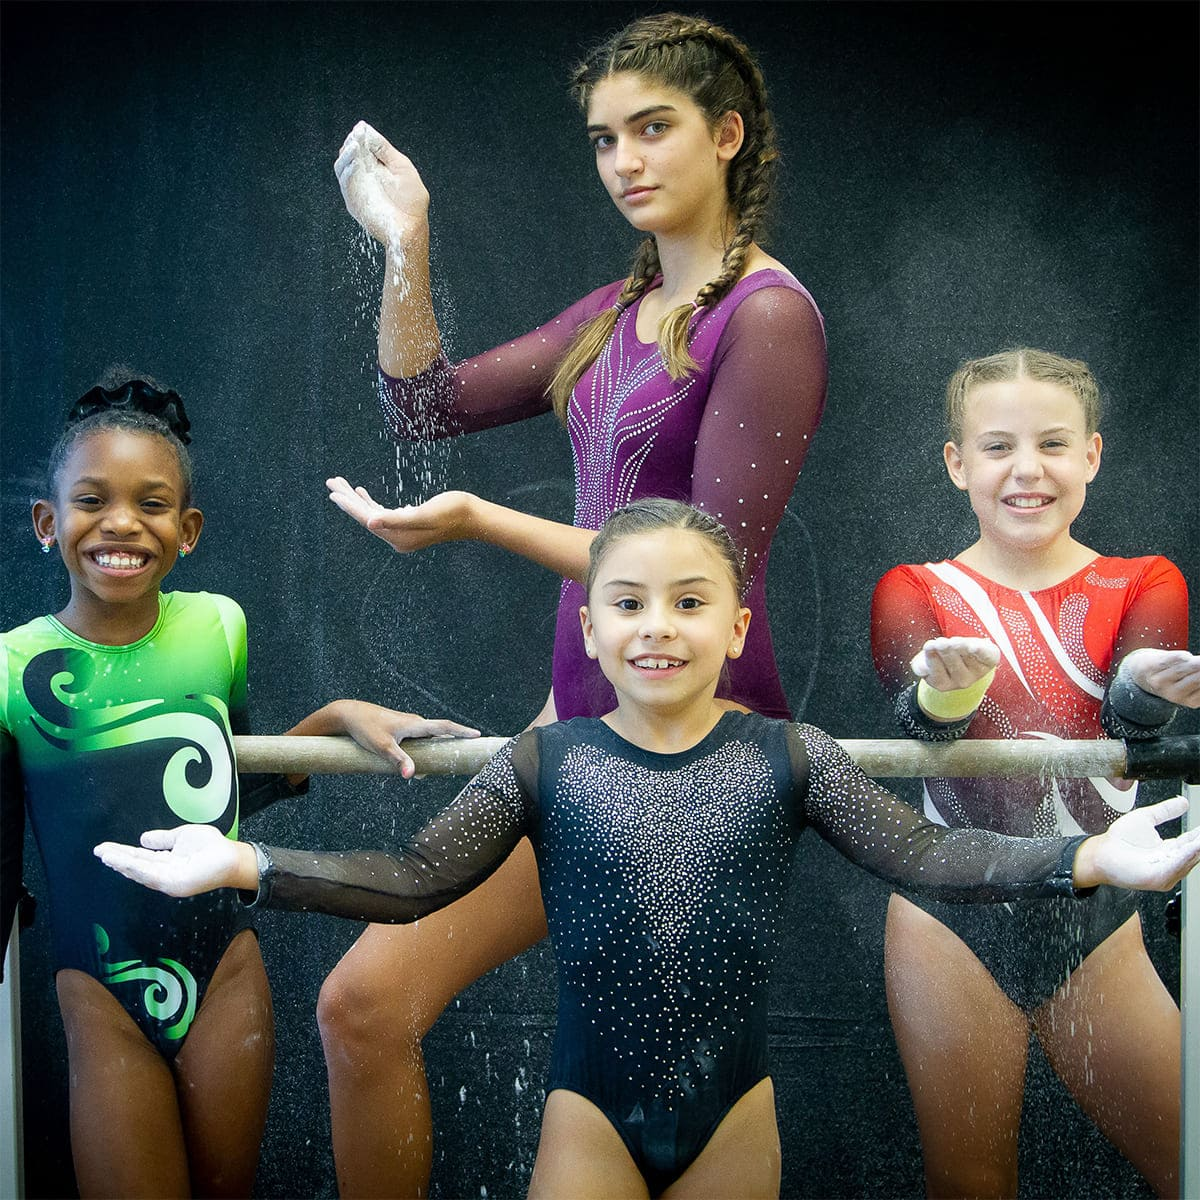 customizable leotard for competition team